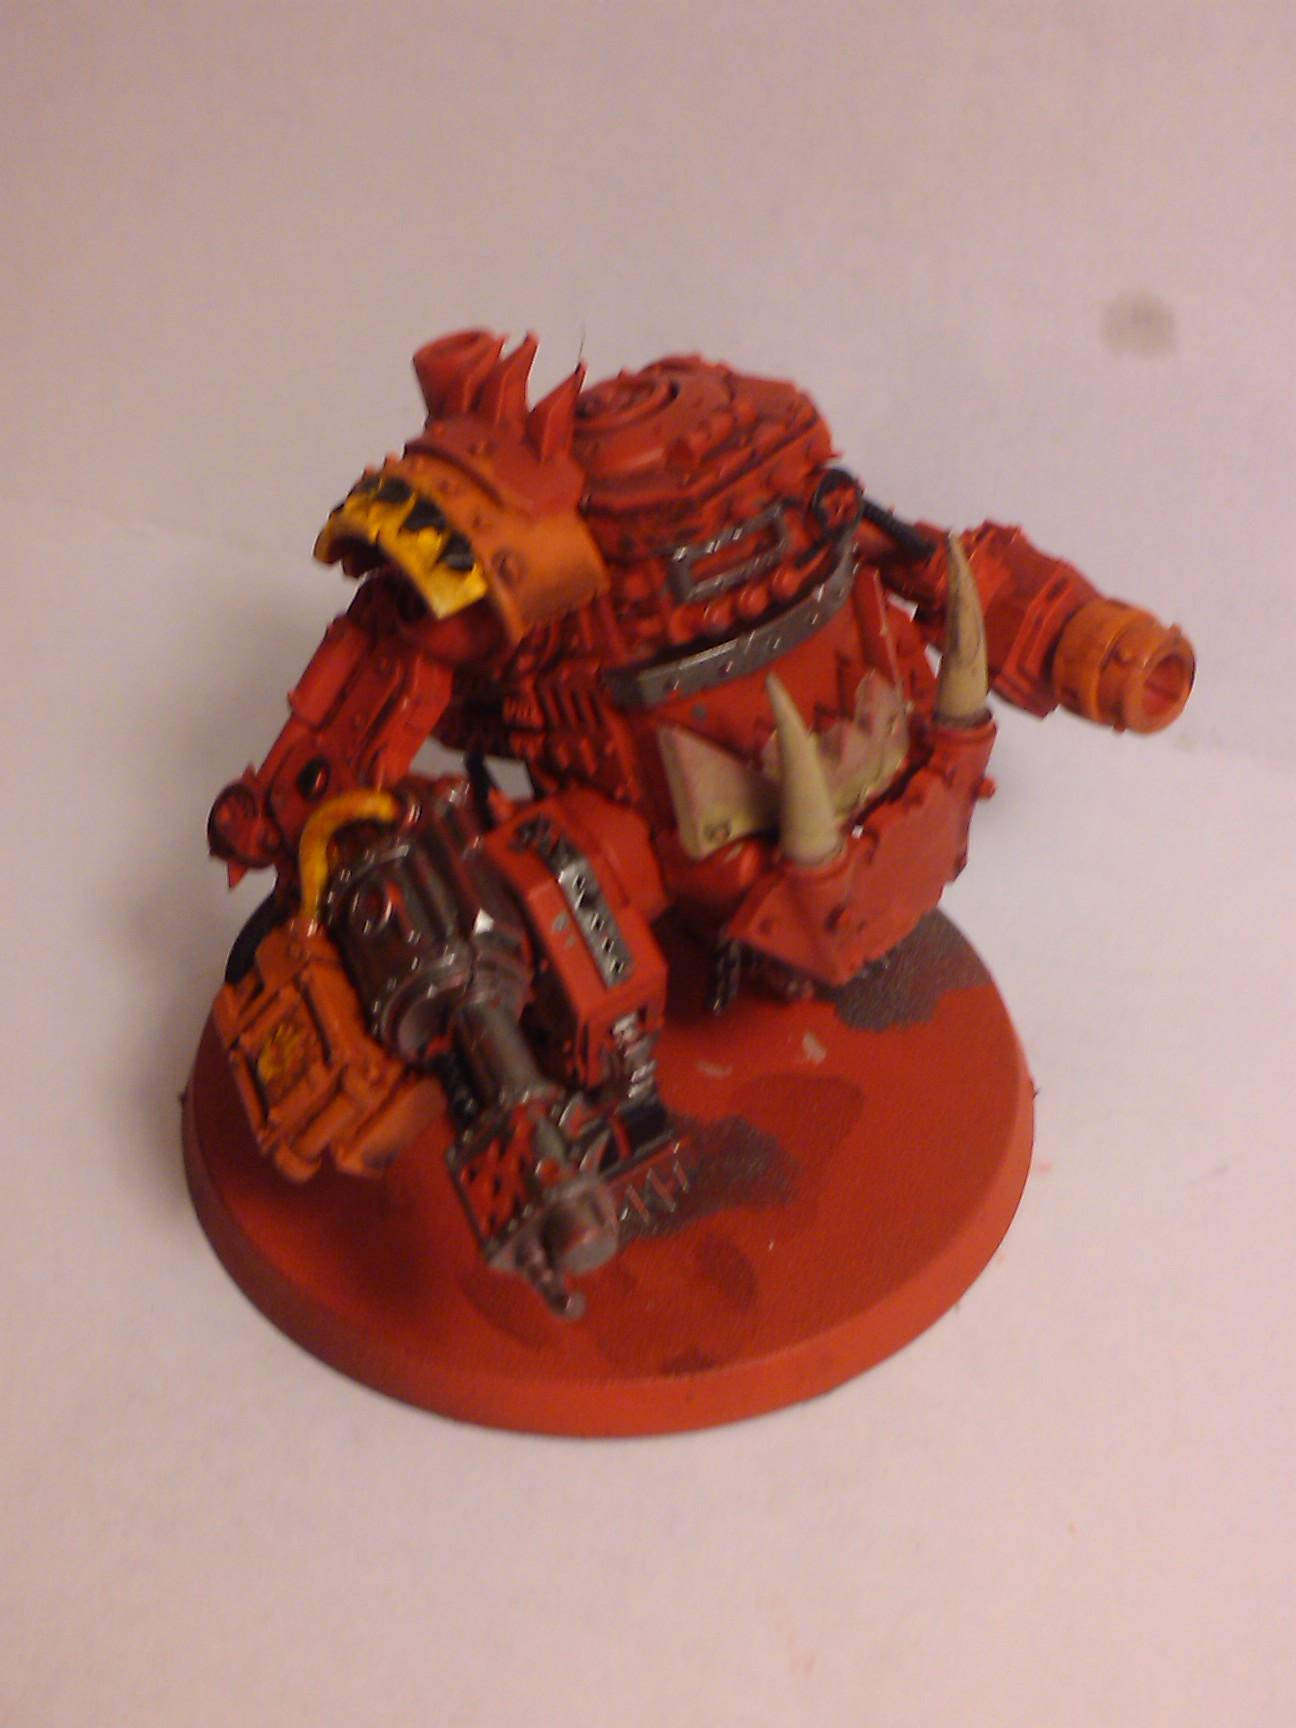 Commission, Conversion, Orcs, Ork Army, Orks, Painting, Project, Red, Tankk, Trukk, Waaagh